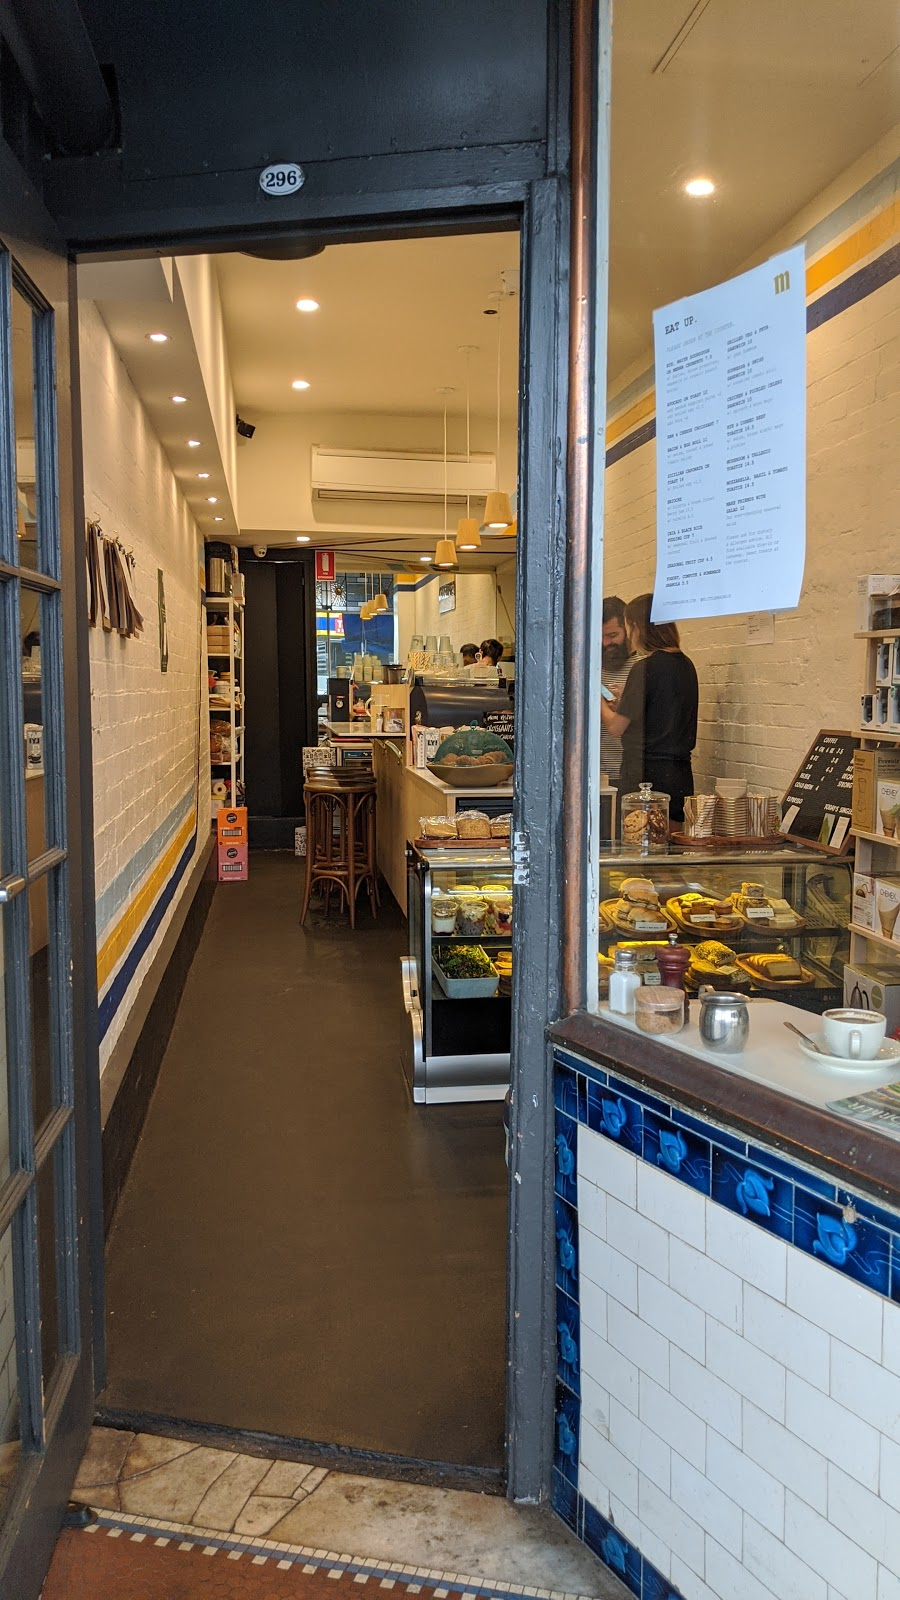 Little M | cafe | 296 Darling St, Balmain NSW 2041, Australia | 0295576980 OR +61 2 9557 6980